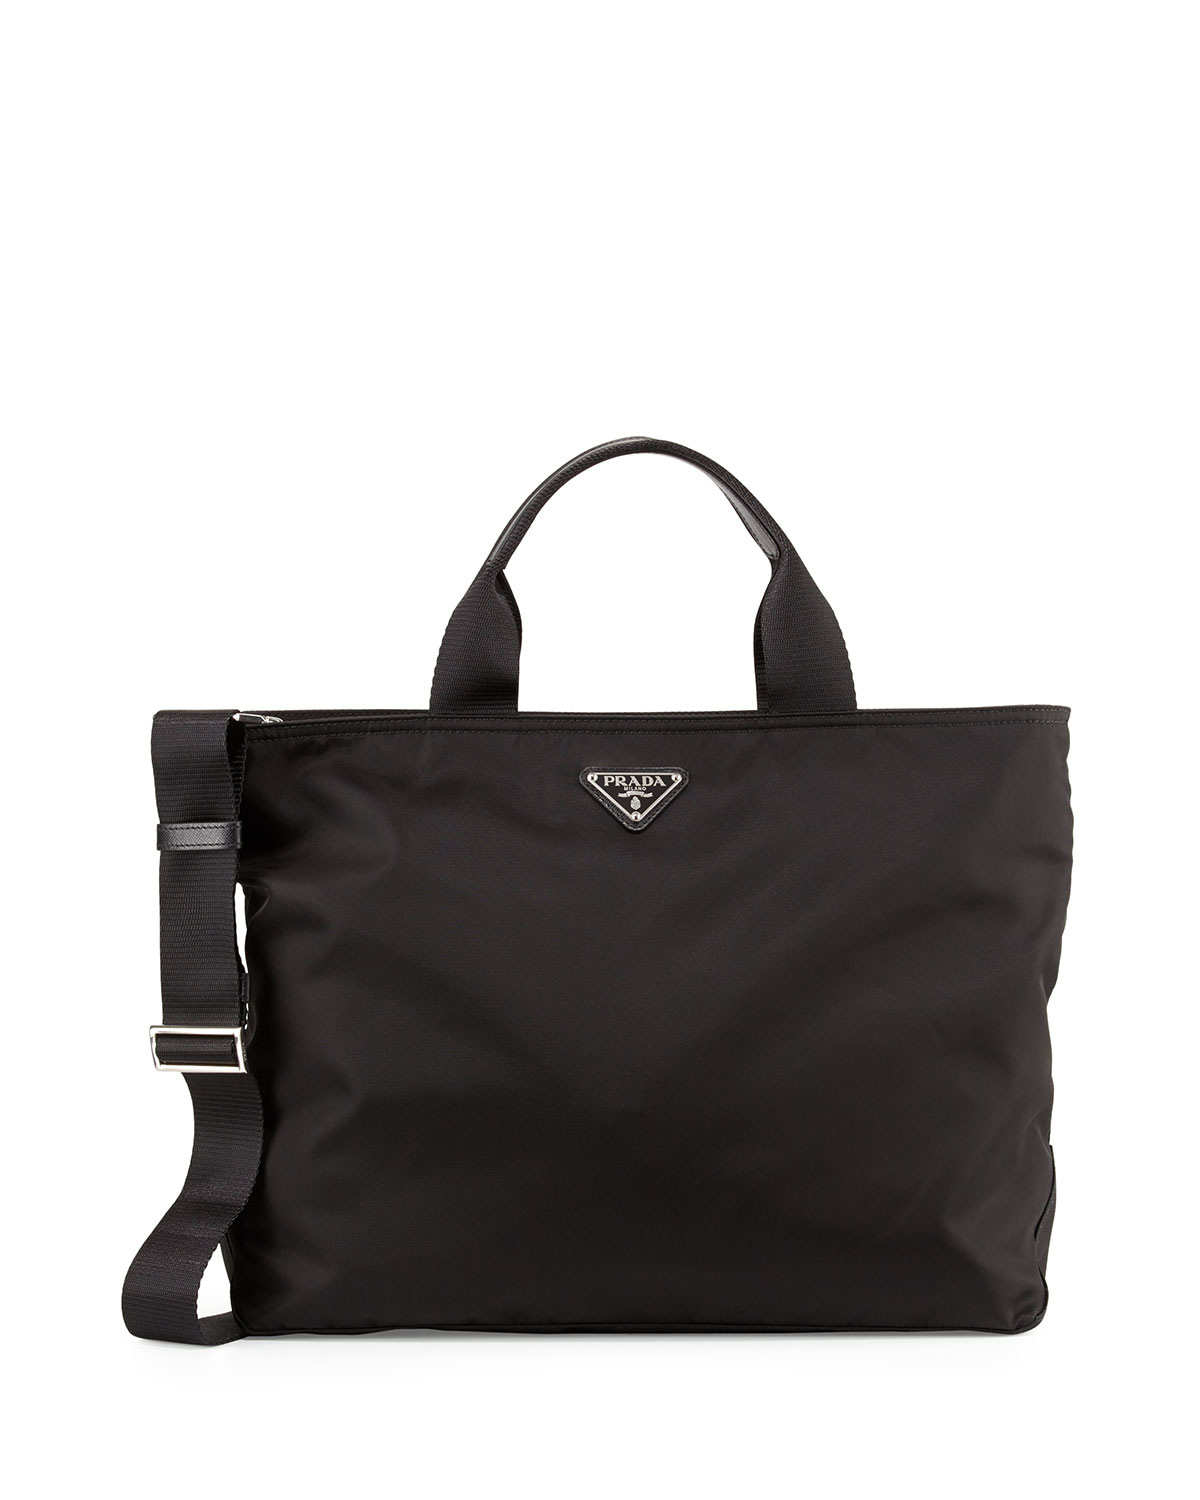 c96c60251b5b Prada Medium Double-Handle Nylon Tote Bag